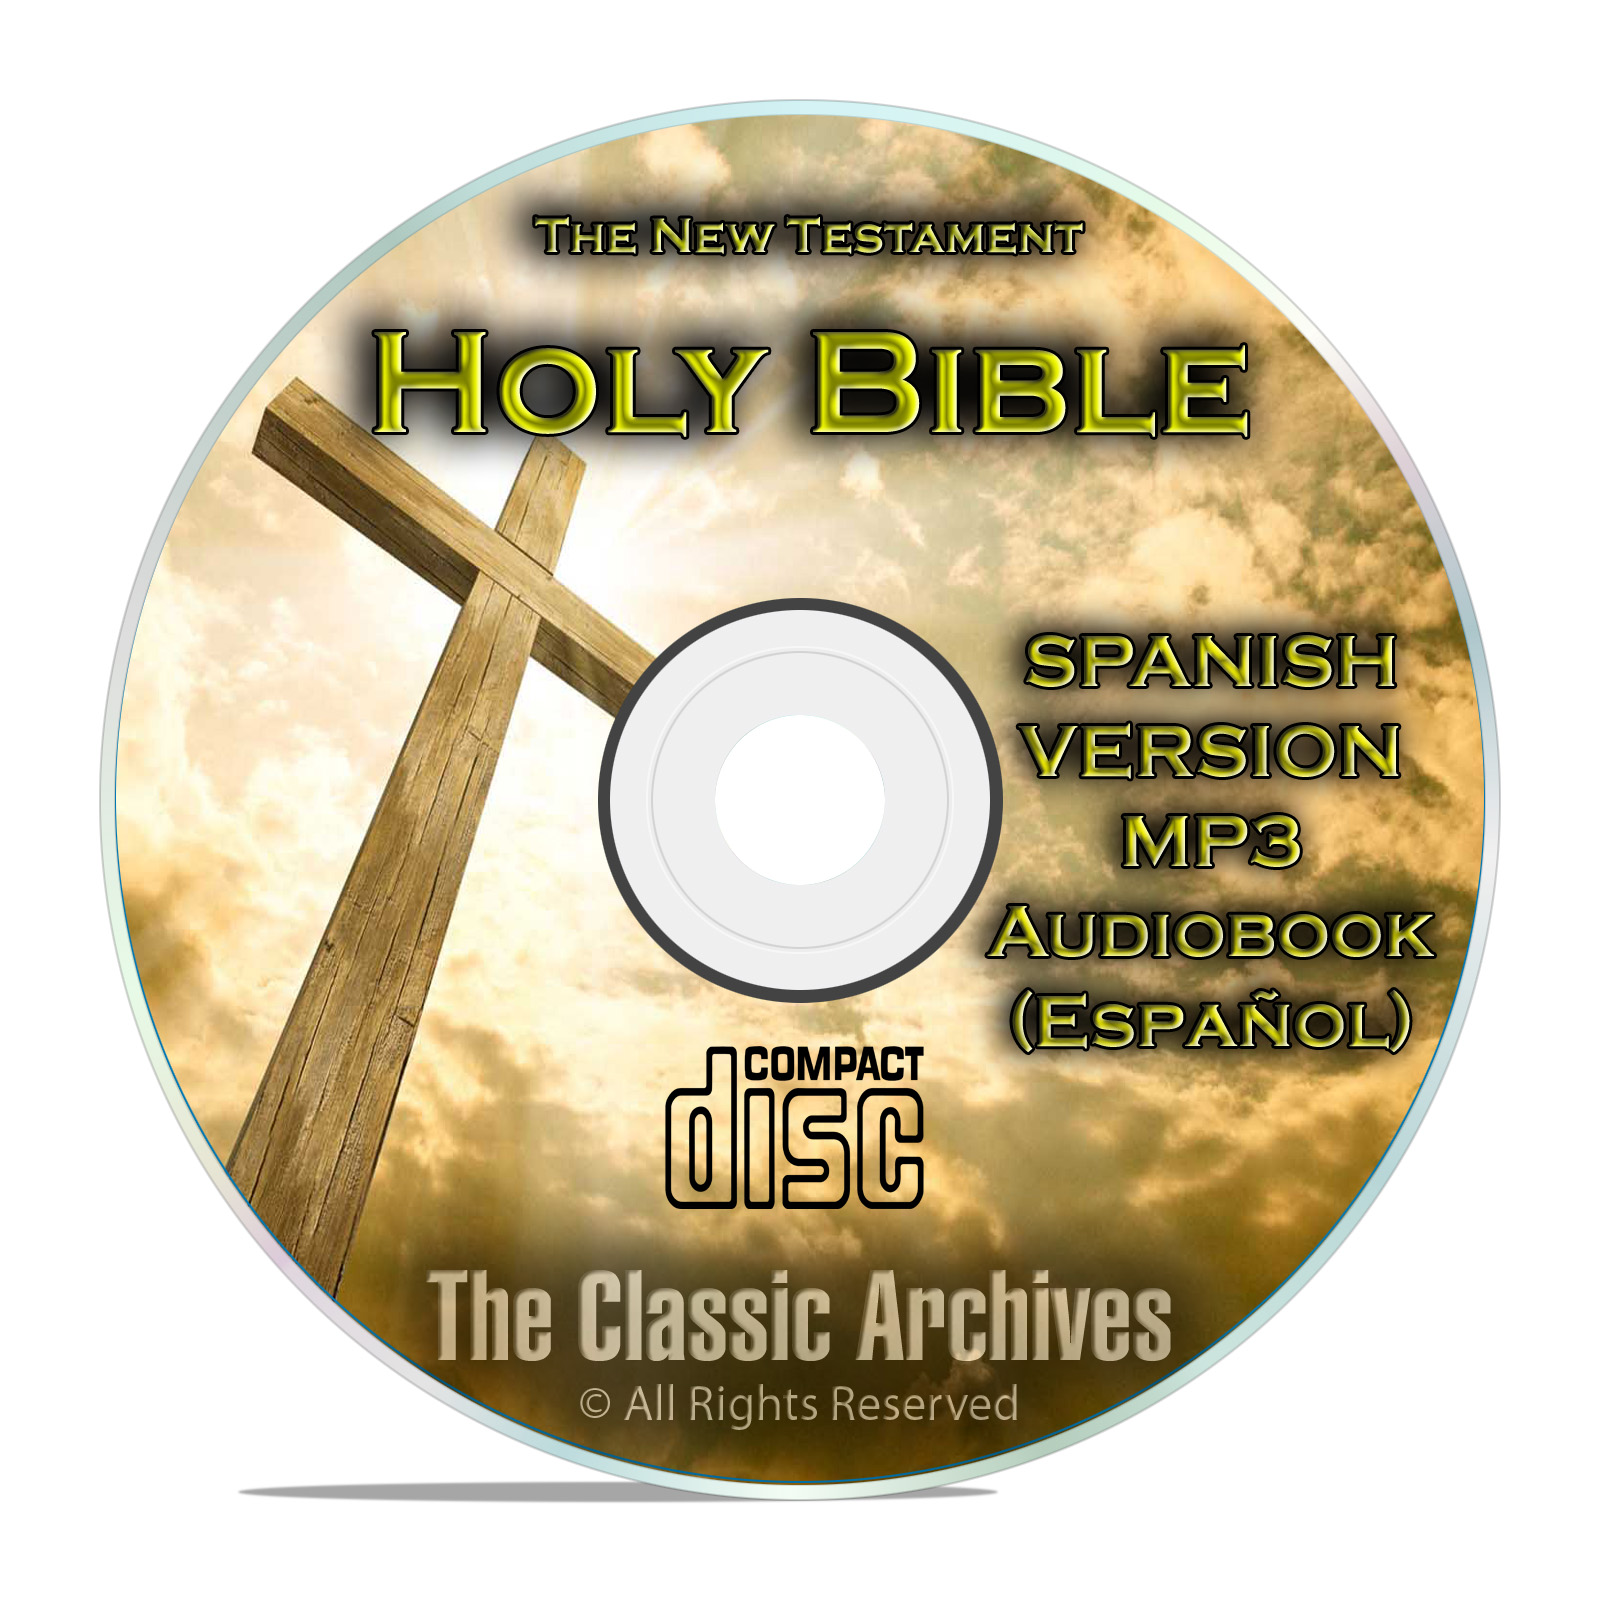 New Testament, Spanish Audio book, Bible Biblia Espanol Libro Jesus MP3 CD